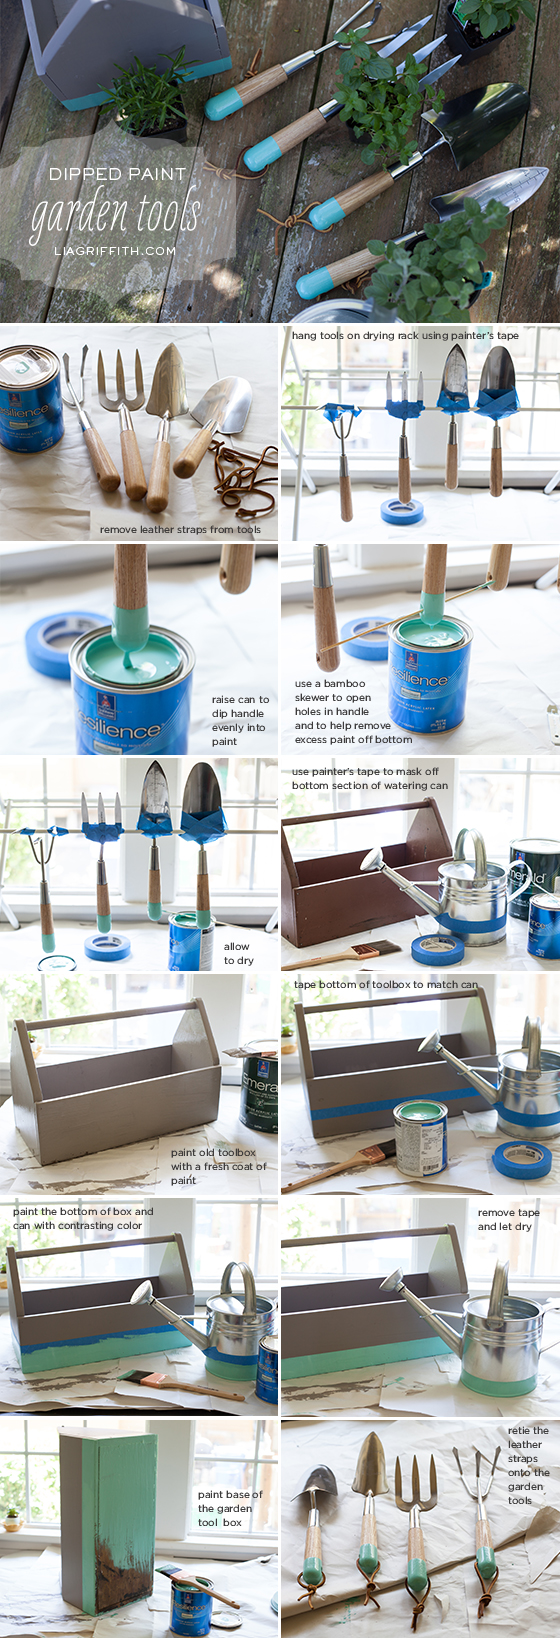 Dip Painted Garden Tools Tutorial